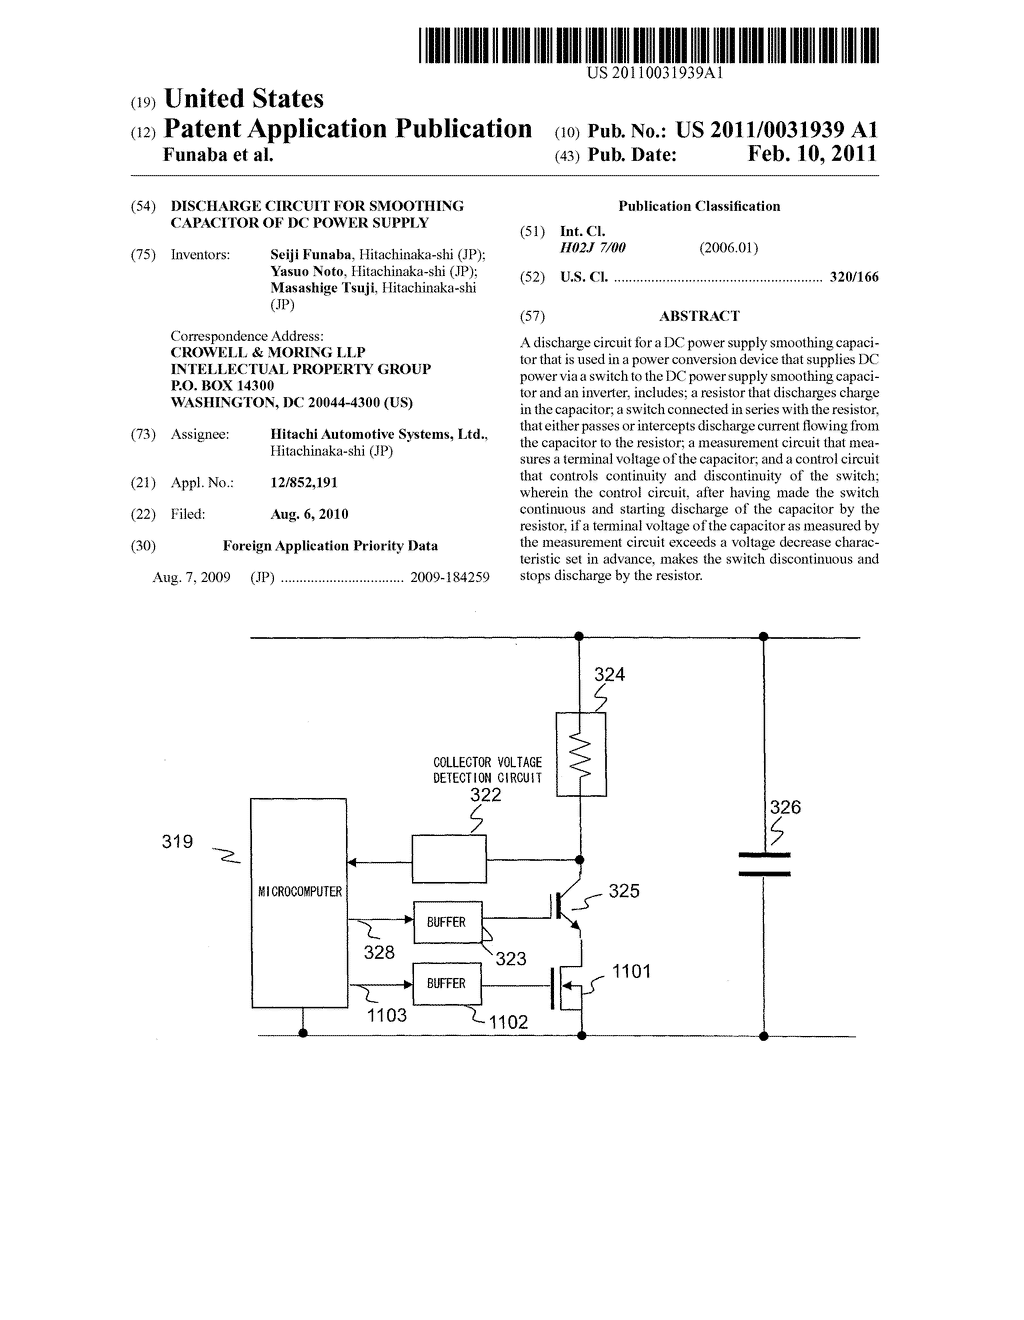 Discharge Circuit For Smoothing Capacitor Of Dc Power Supply Diagram Schematic And Image 01